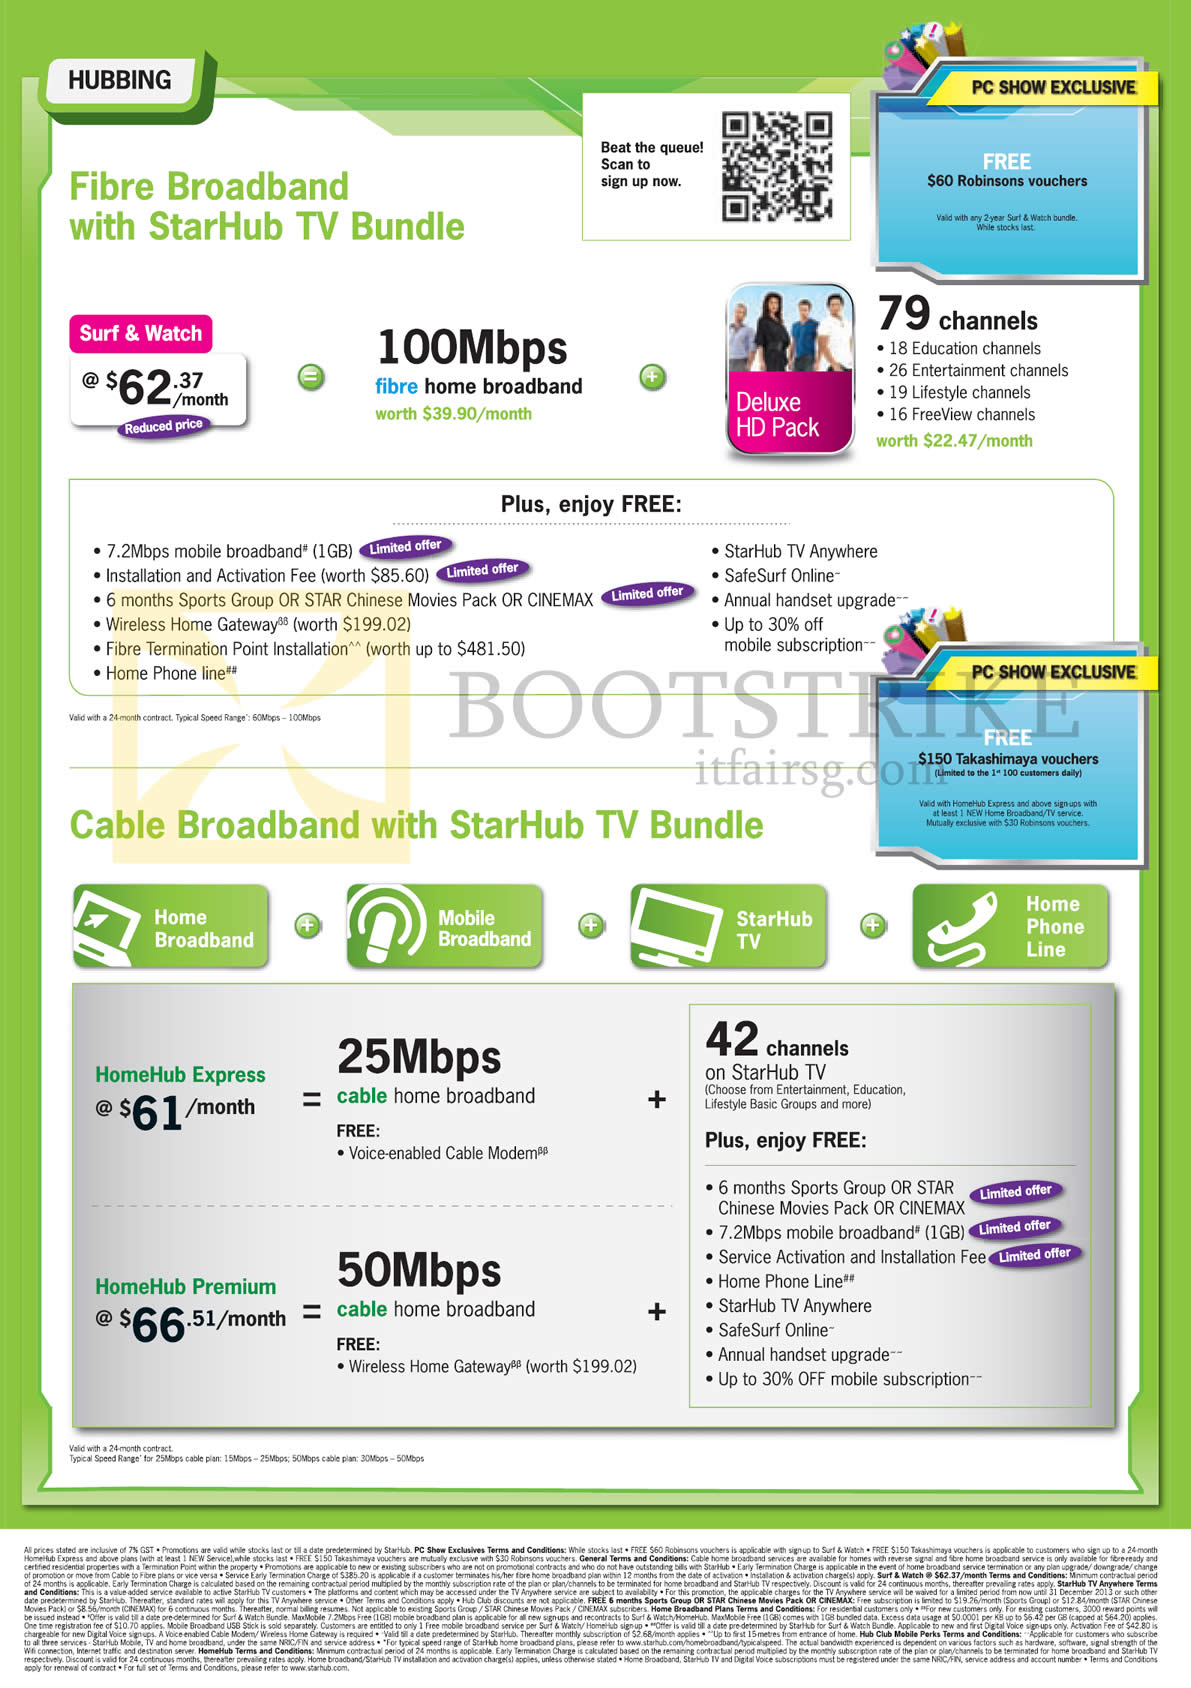 PC SHOW 2013 price list image brochure of Starhub Broadband Cable, Hubbing Surf N Watch, Deluxe HD Pack